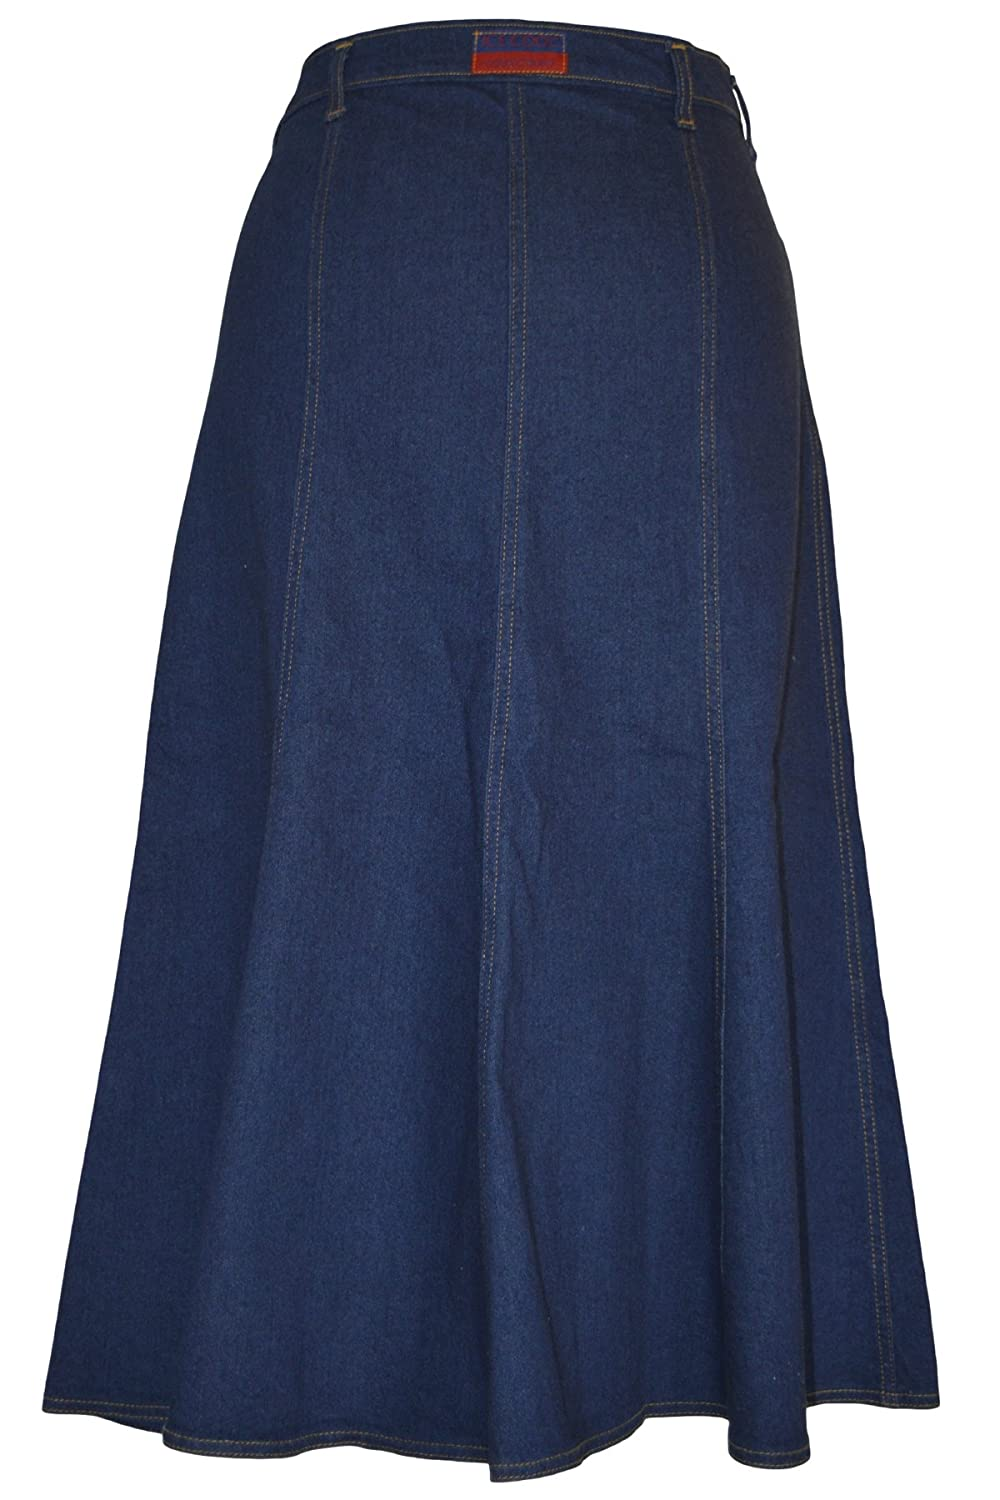 Ice Cool Ladies Long Flared Indigo Stretch Denim Skirt Sizes 10 to 22 in 30 /& 35 Lengths